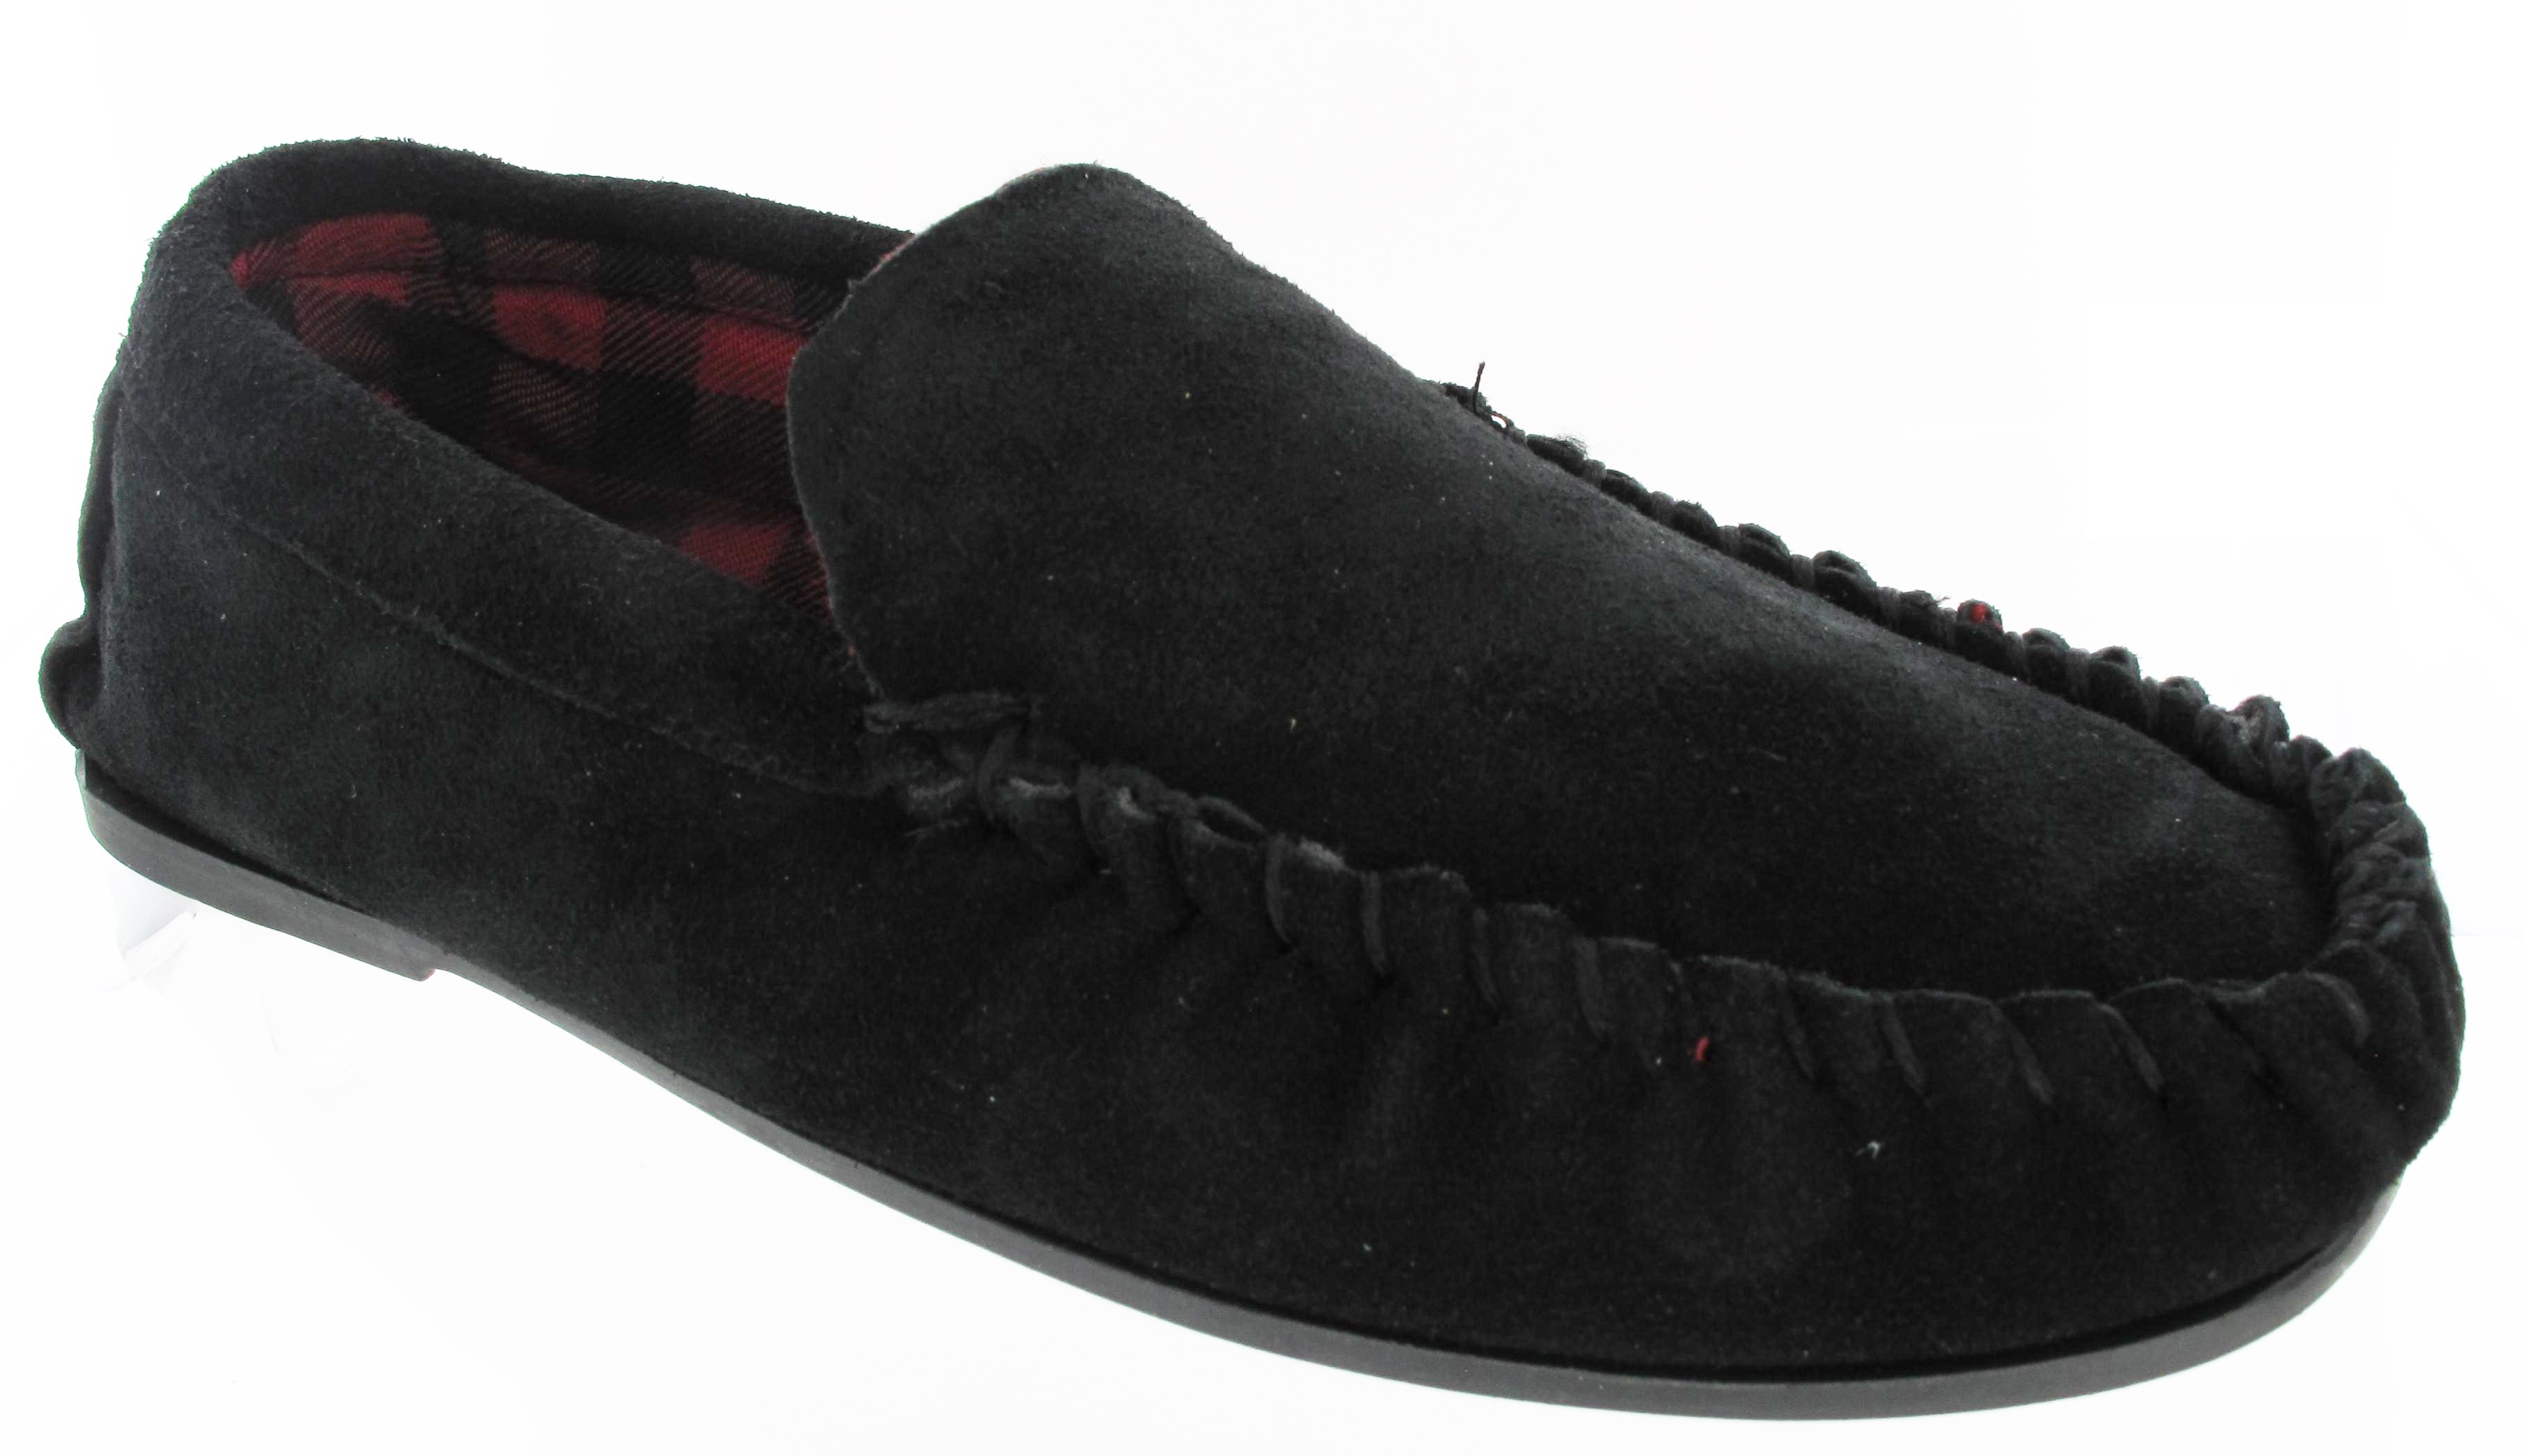 MENS-GENTS-REAL-LEATHER-SUEDE-MOCCASIN-WINTER-FLAT-BLACK-SLIPPERS-SIZE-UK-6-12 thumbnail 3